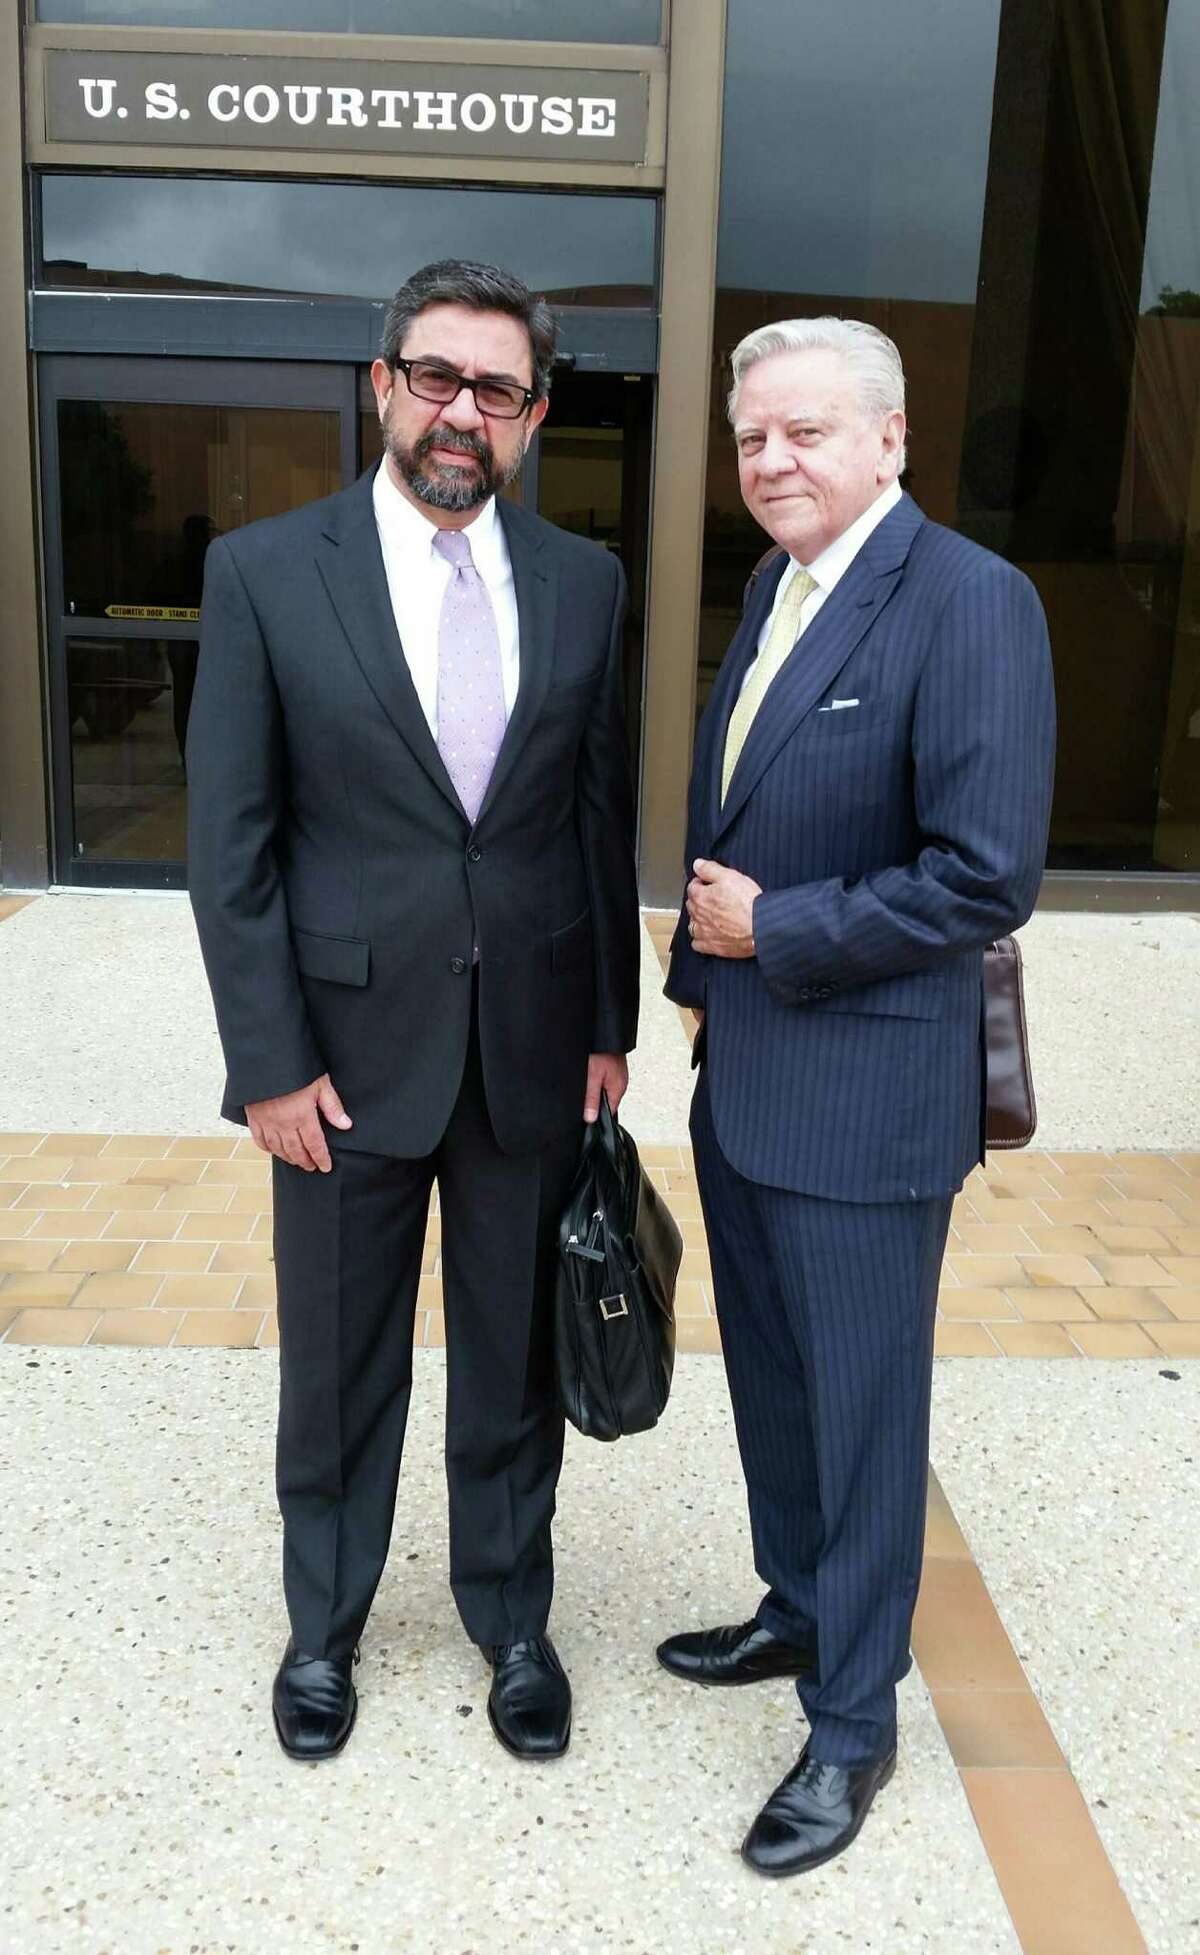 Businessman Alberto Berlanga Bolado, left, and his lawyer, Rolando Rios, stand outside federal court in San Antonio last May after reaching a settlement in a forfeiture case involving valuable land authorities alleged was bought for an indicted former Mexican governor. The land now has sold for $7 million, of which the government will get $1 million.